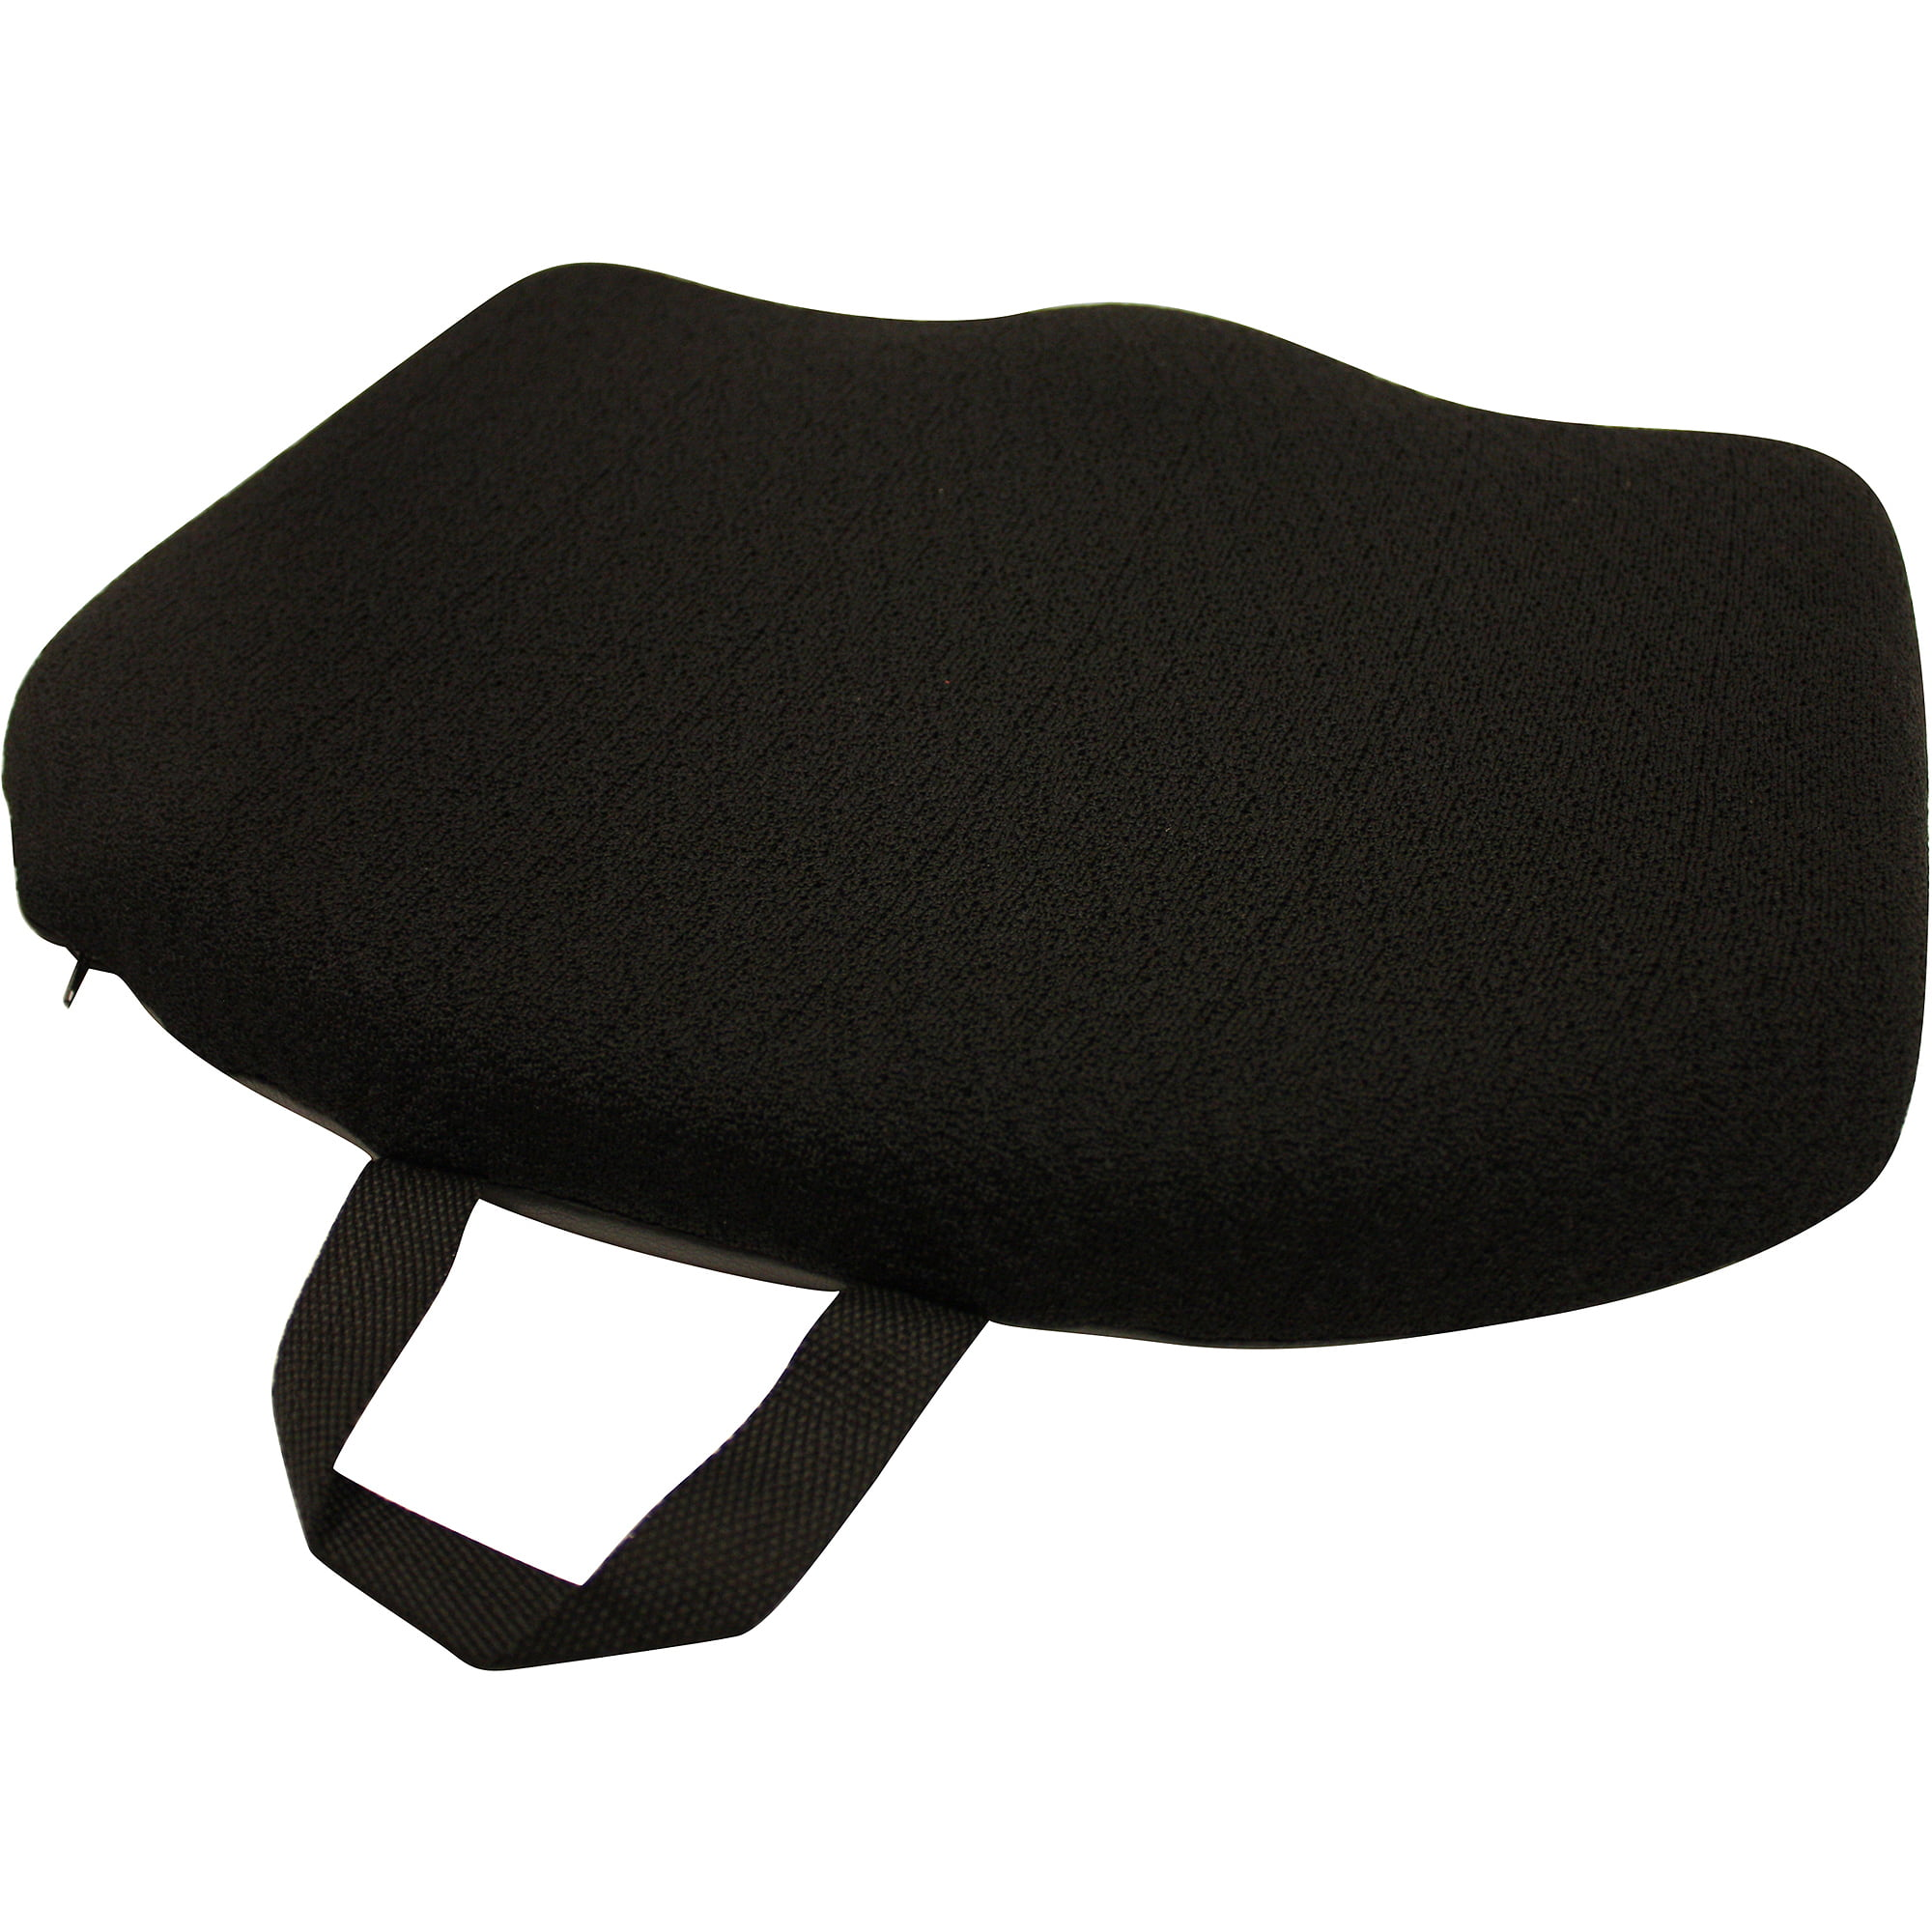 Auto Drive Travel Memory Foam Seat Cushion   Walmart.com